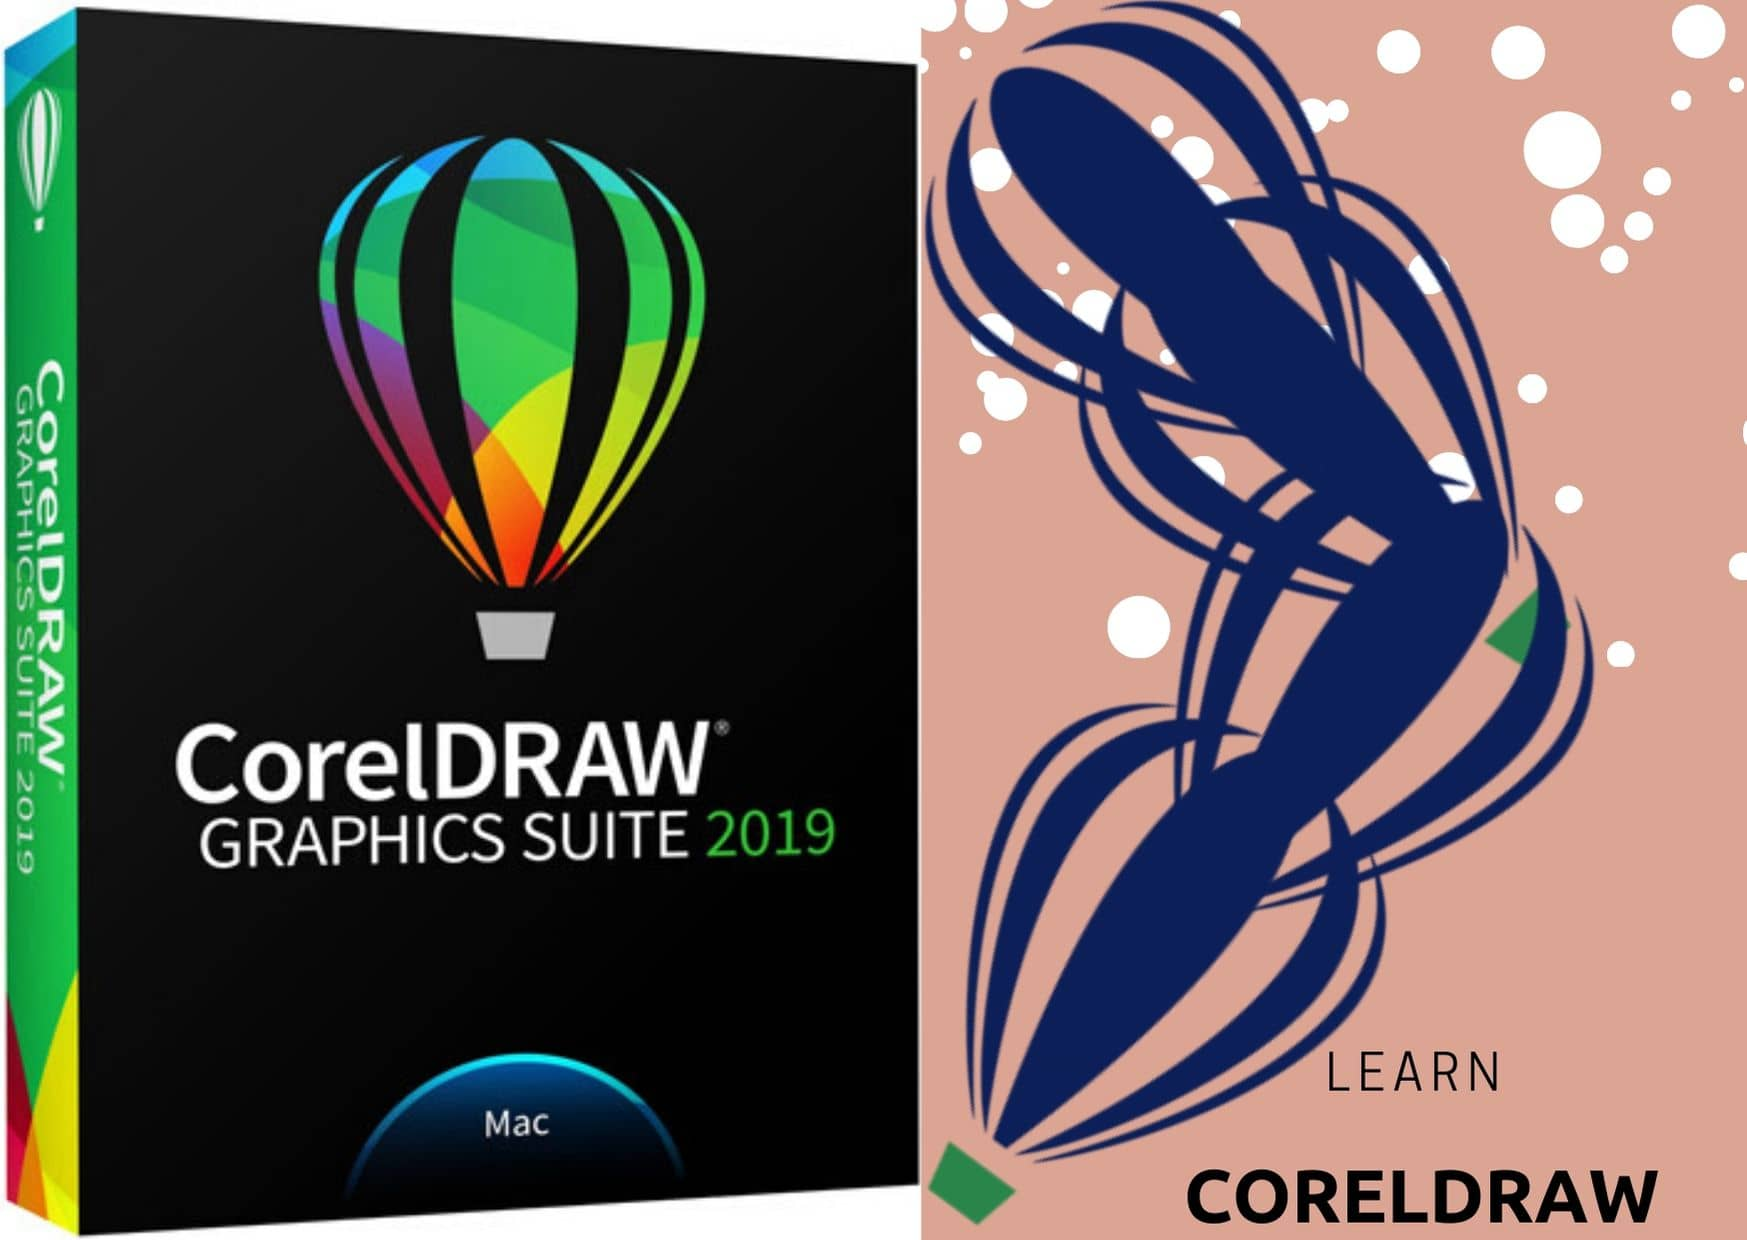 graphic packages: Learn coreldraw part 1